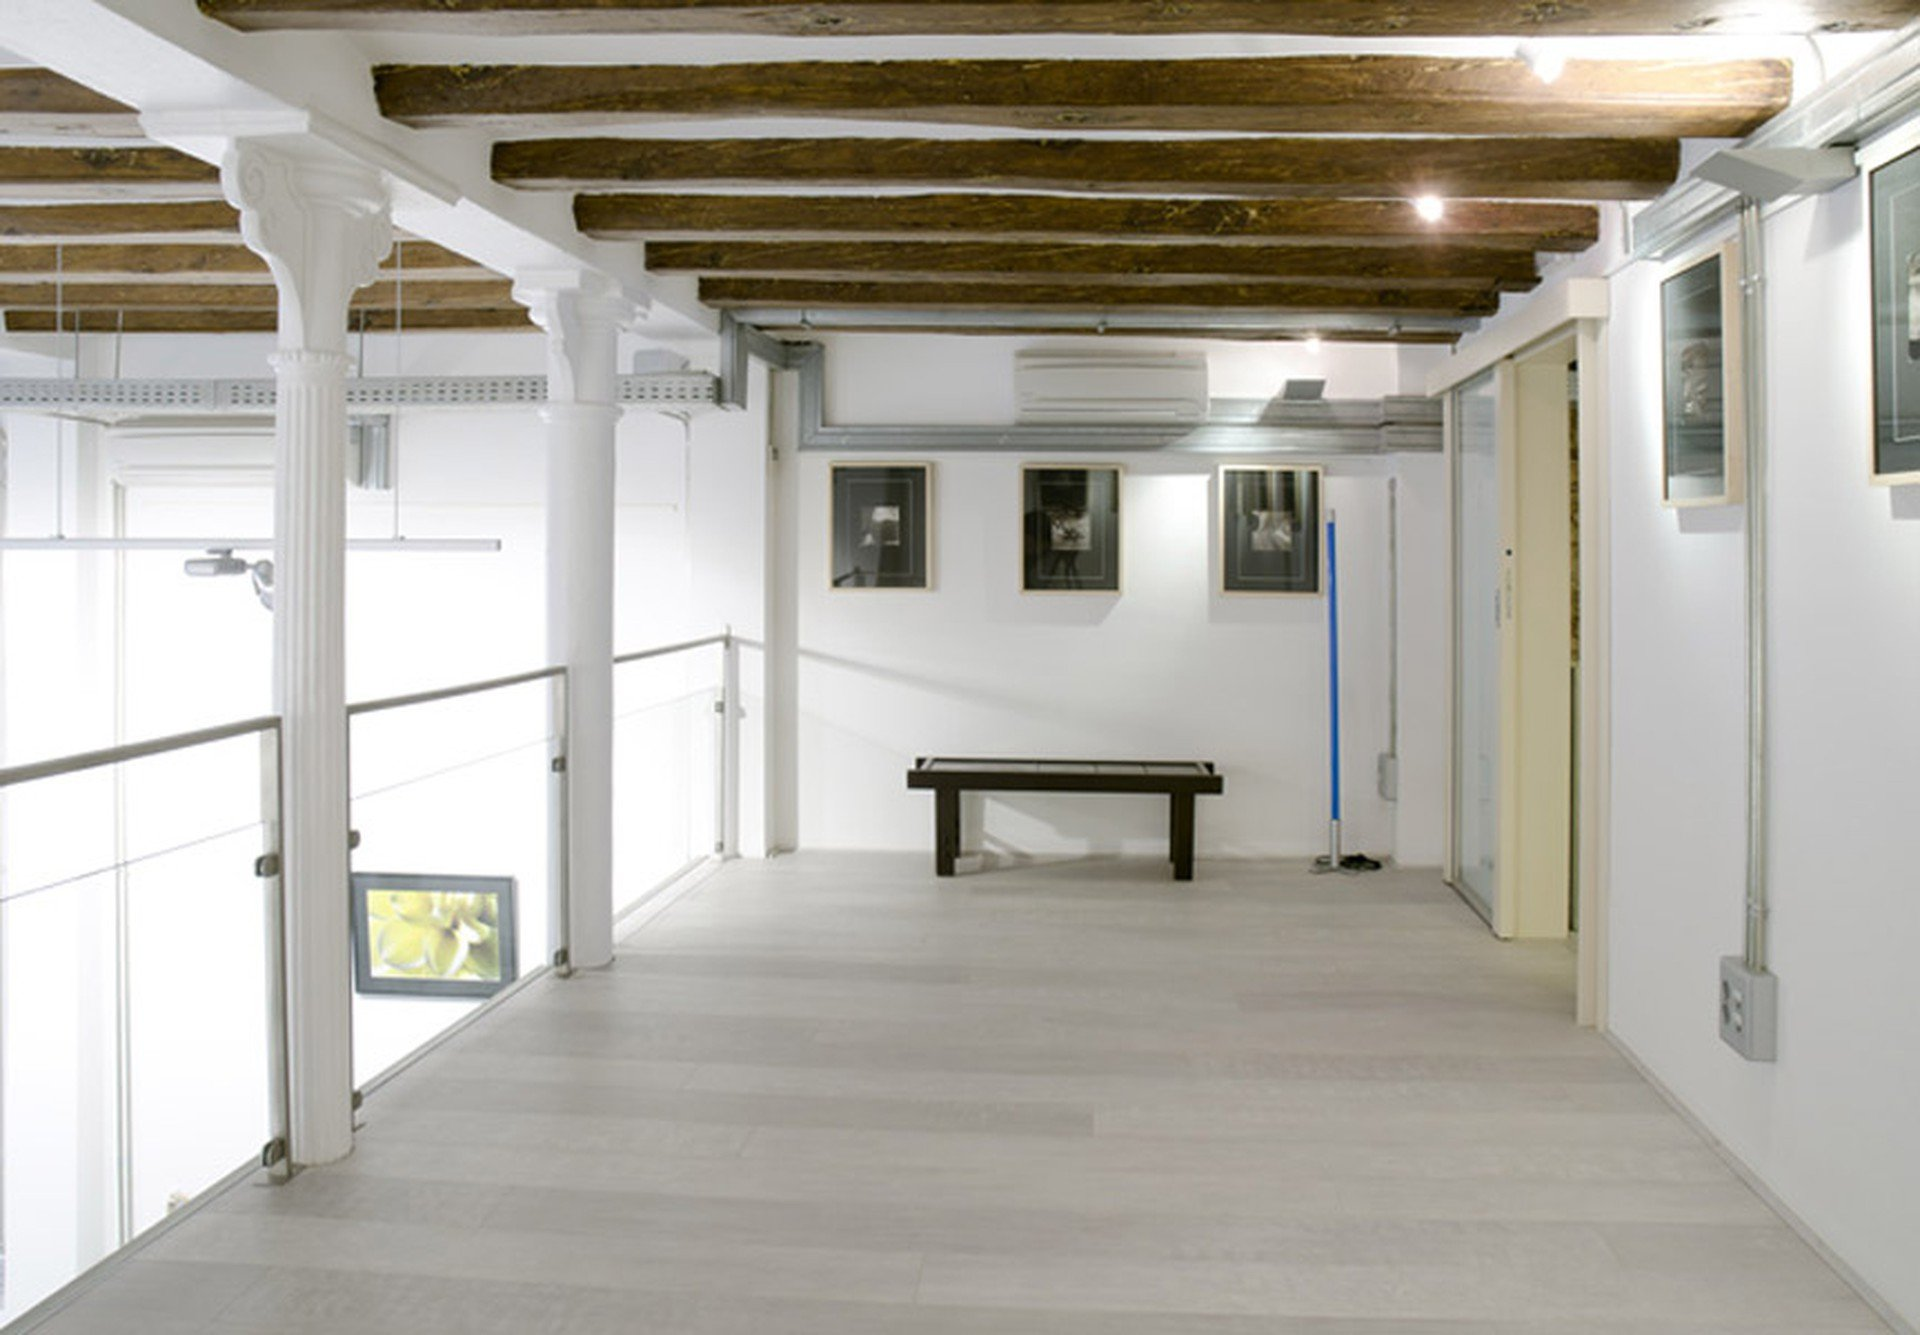 Barcelona workshop spaces Meeting room Mezanina - 2nd Floor Main Room image 0